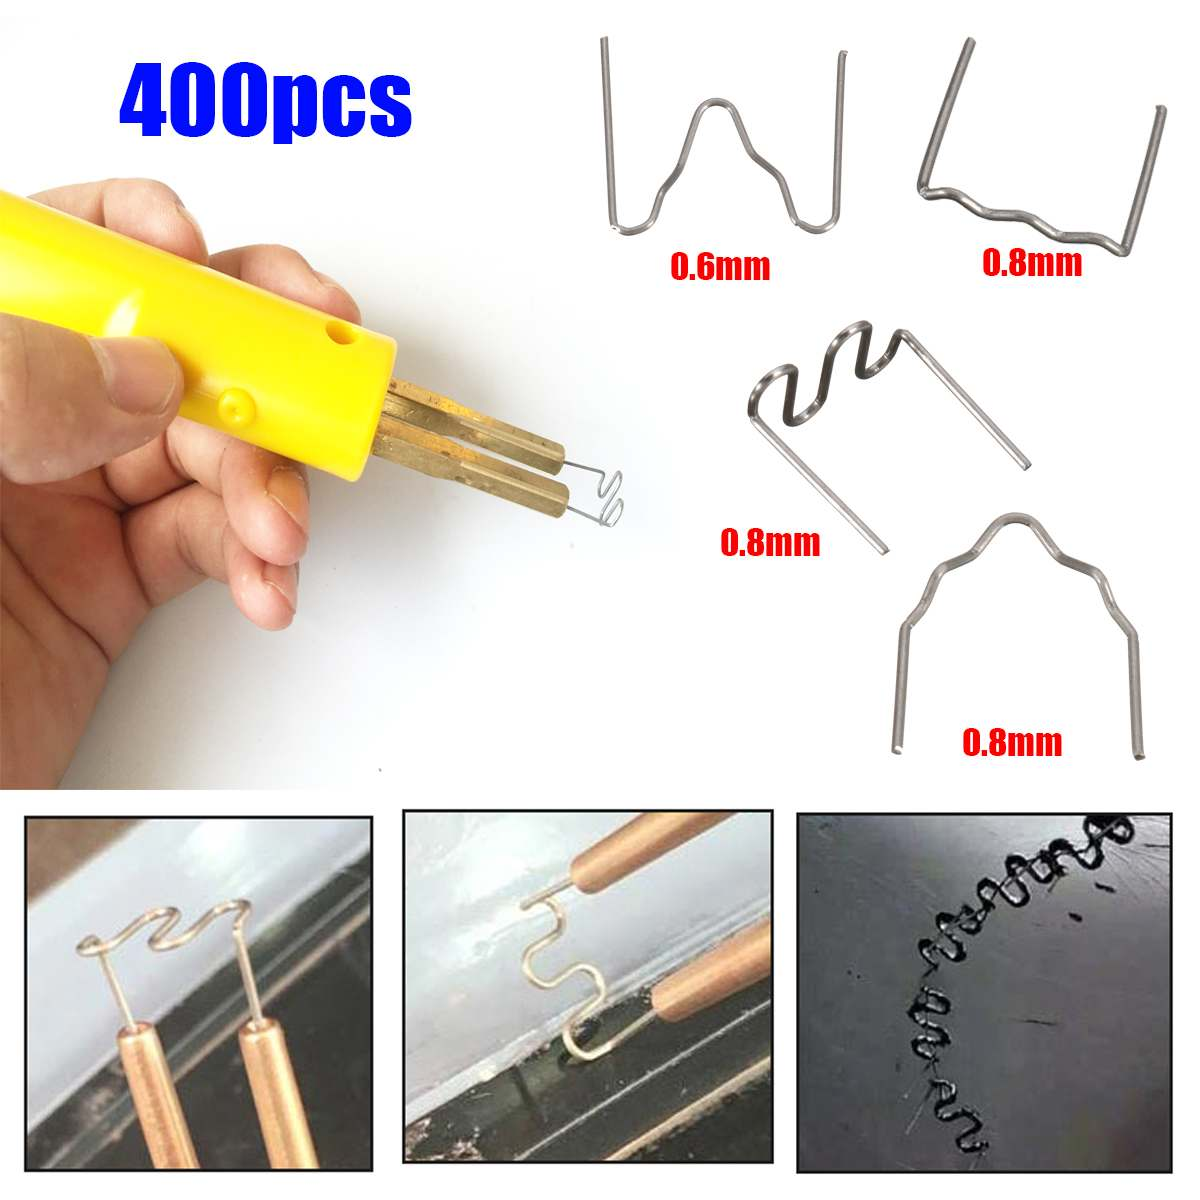 NEW 400 Pcs Thermal Thermo Staples Repair Kit For Hot Stapler Bumper Auto For Fender Welders 100pcs/type